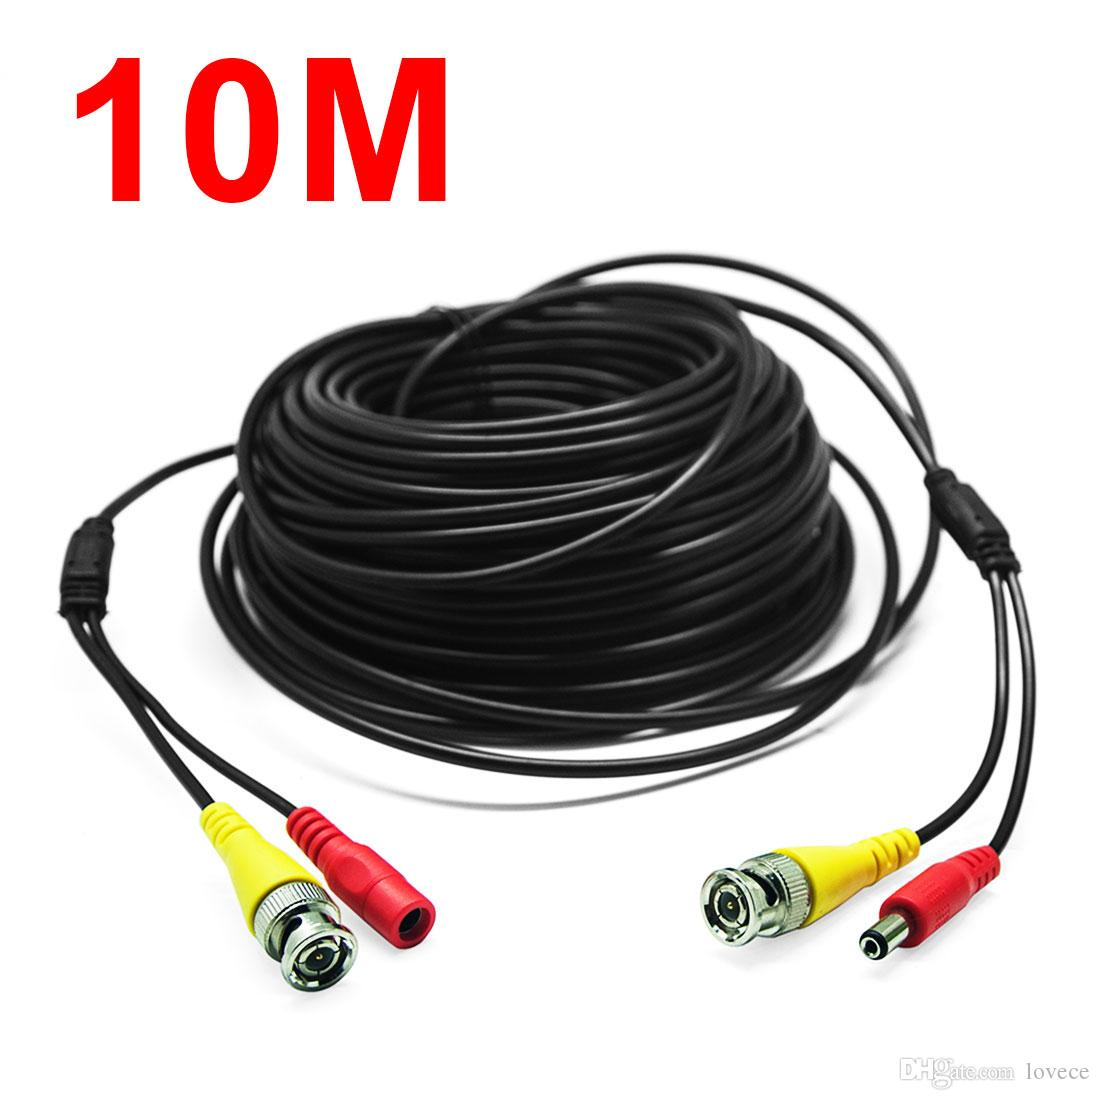 33Feet/10M BNC RCA Audio Video Power Extension Cable DVR Surveillance Wire for CCTV Security Camera CCT_213